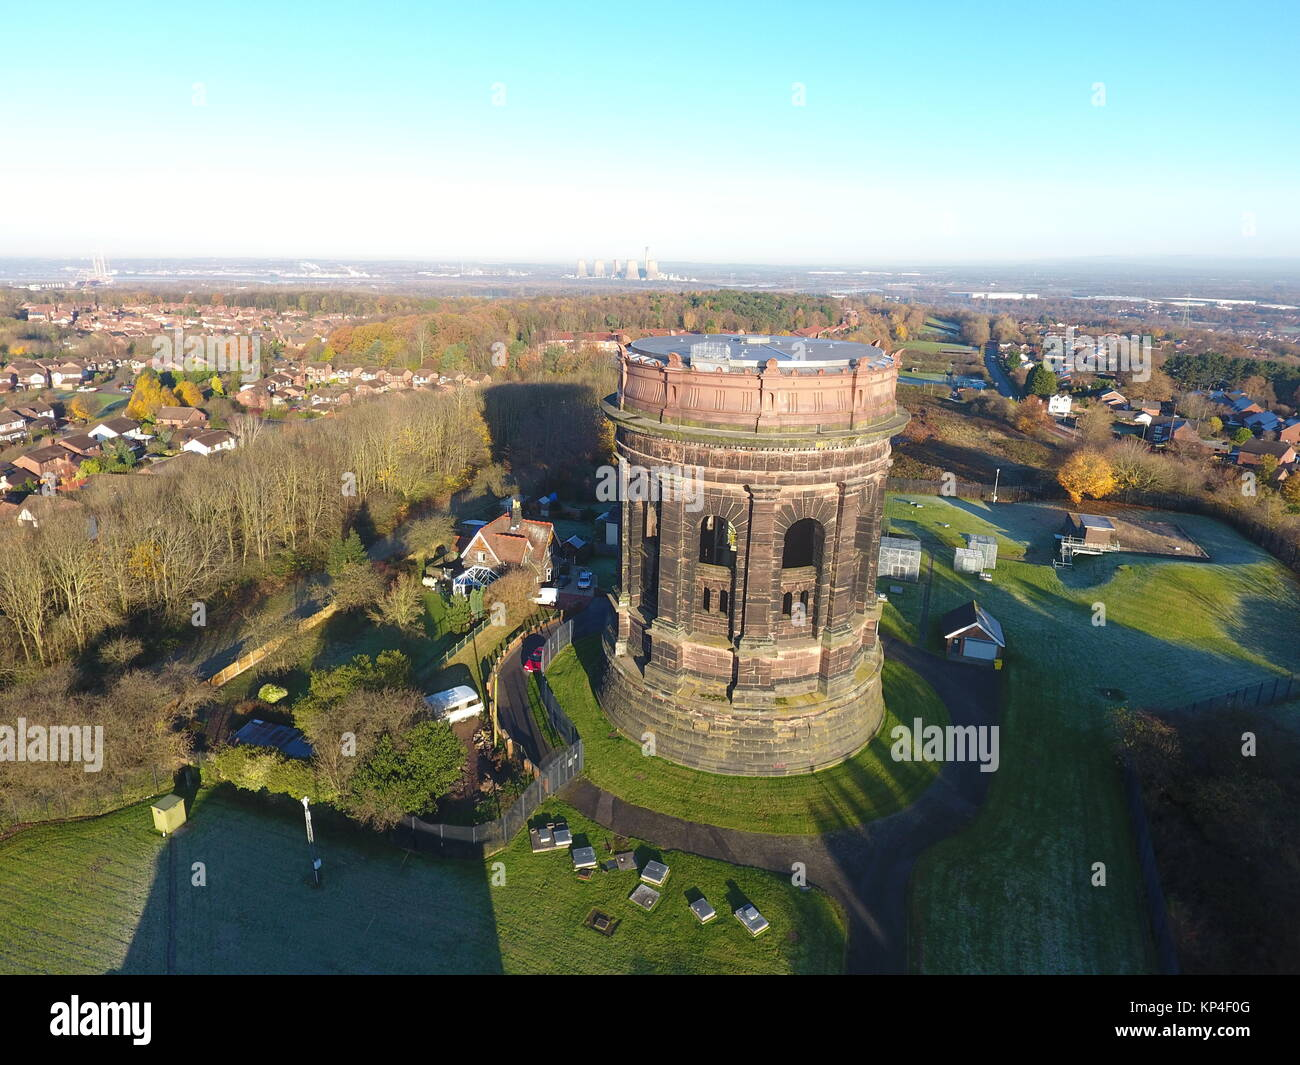 Aerial photograph of Runcorn water tower - Stock Image